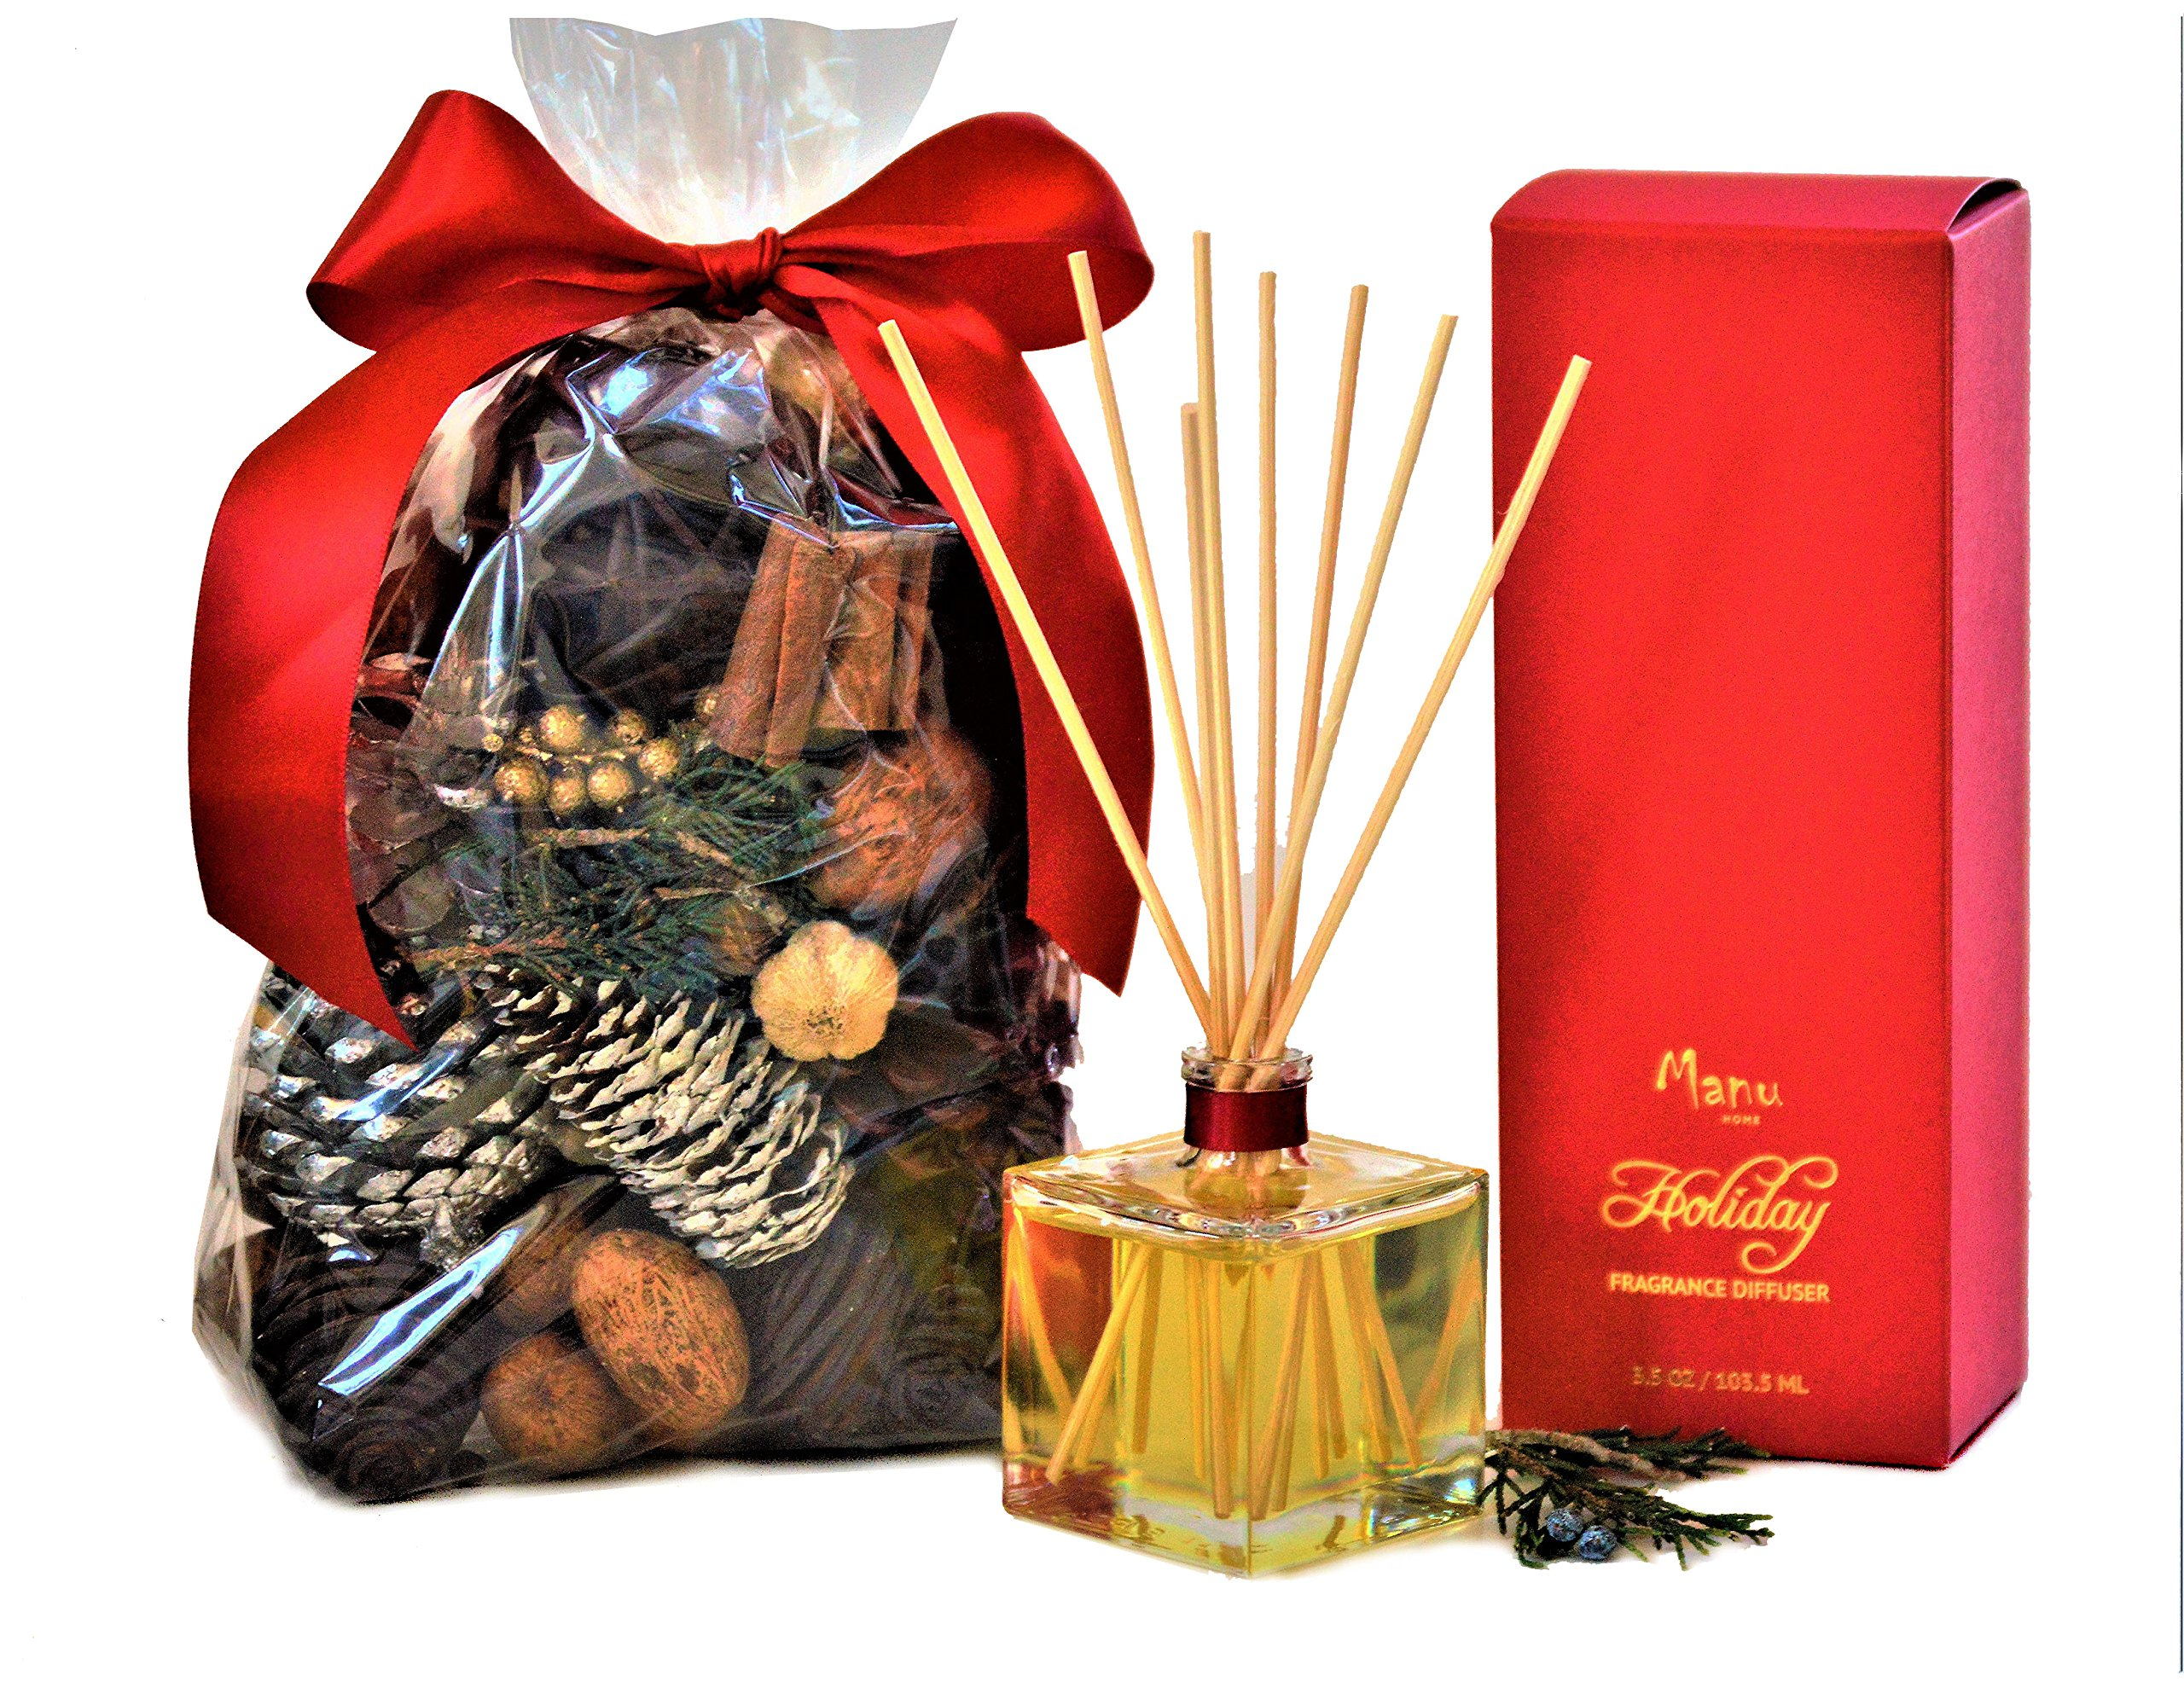 Manu Home Cinnamon & Clove Potpourri & Reed Diffuser Set~ Our Cinnamon Scent Offers a Holiday Glow with The Spicy Warmth of Real Imported Cinnamon and a hint of Clove. by Manu Home